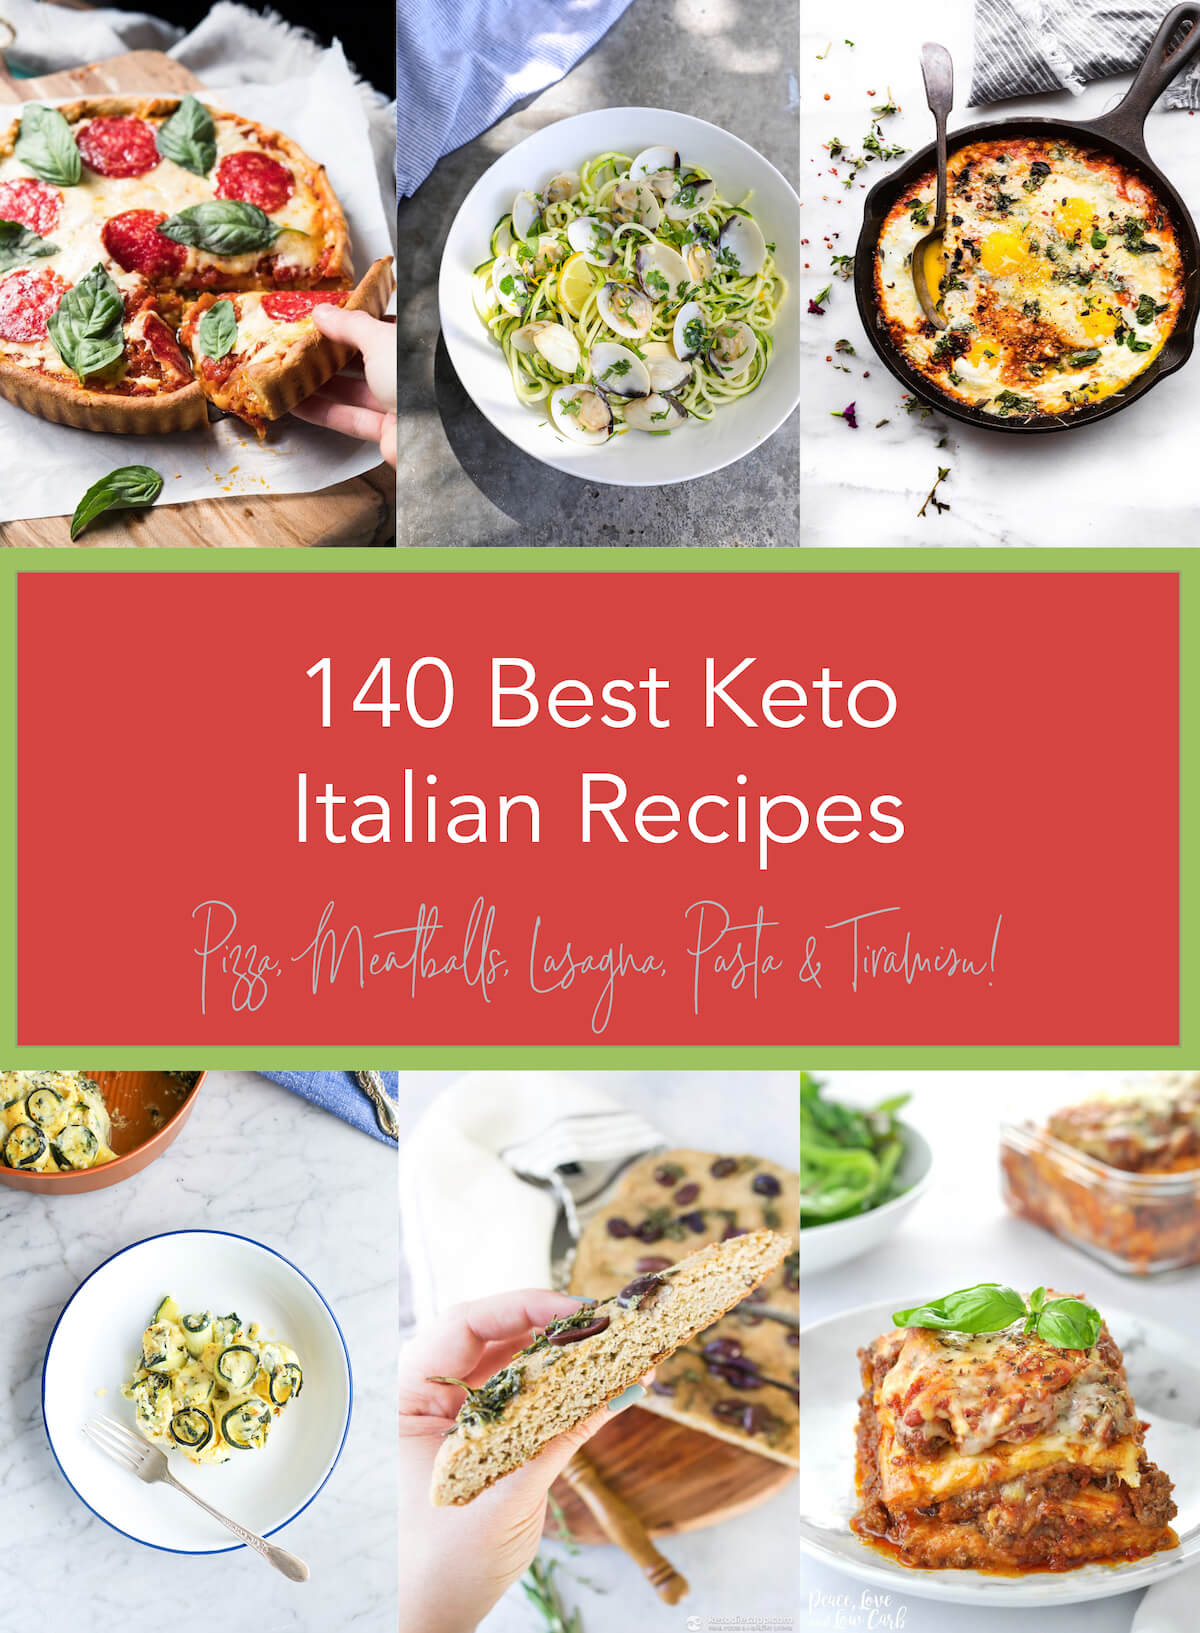 140 Best Keto Italian Recipes Low Carb Pizza Pasta Meatballs Lasagna